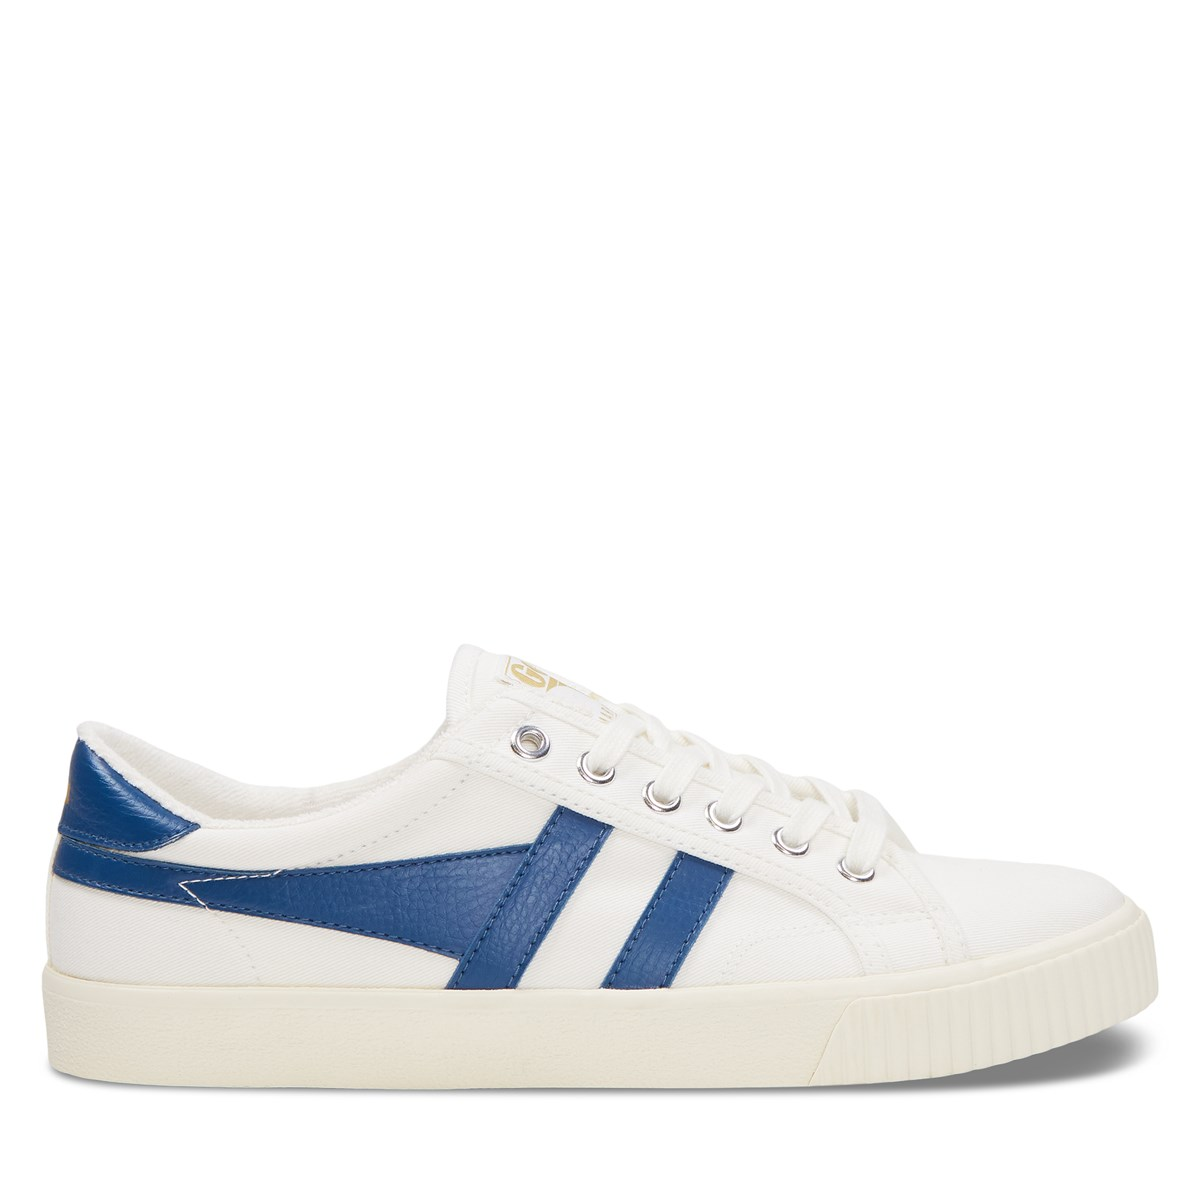 Women's Tennis Mark Cox Sneakers in White